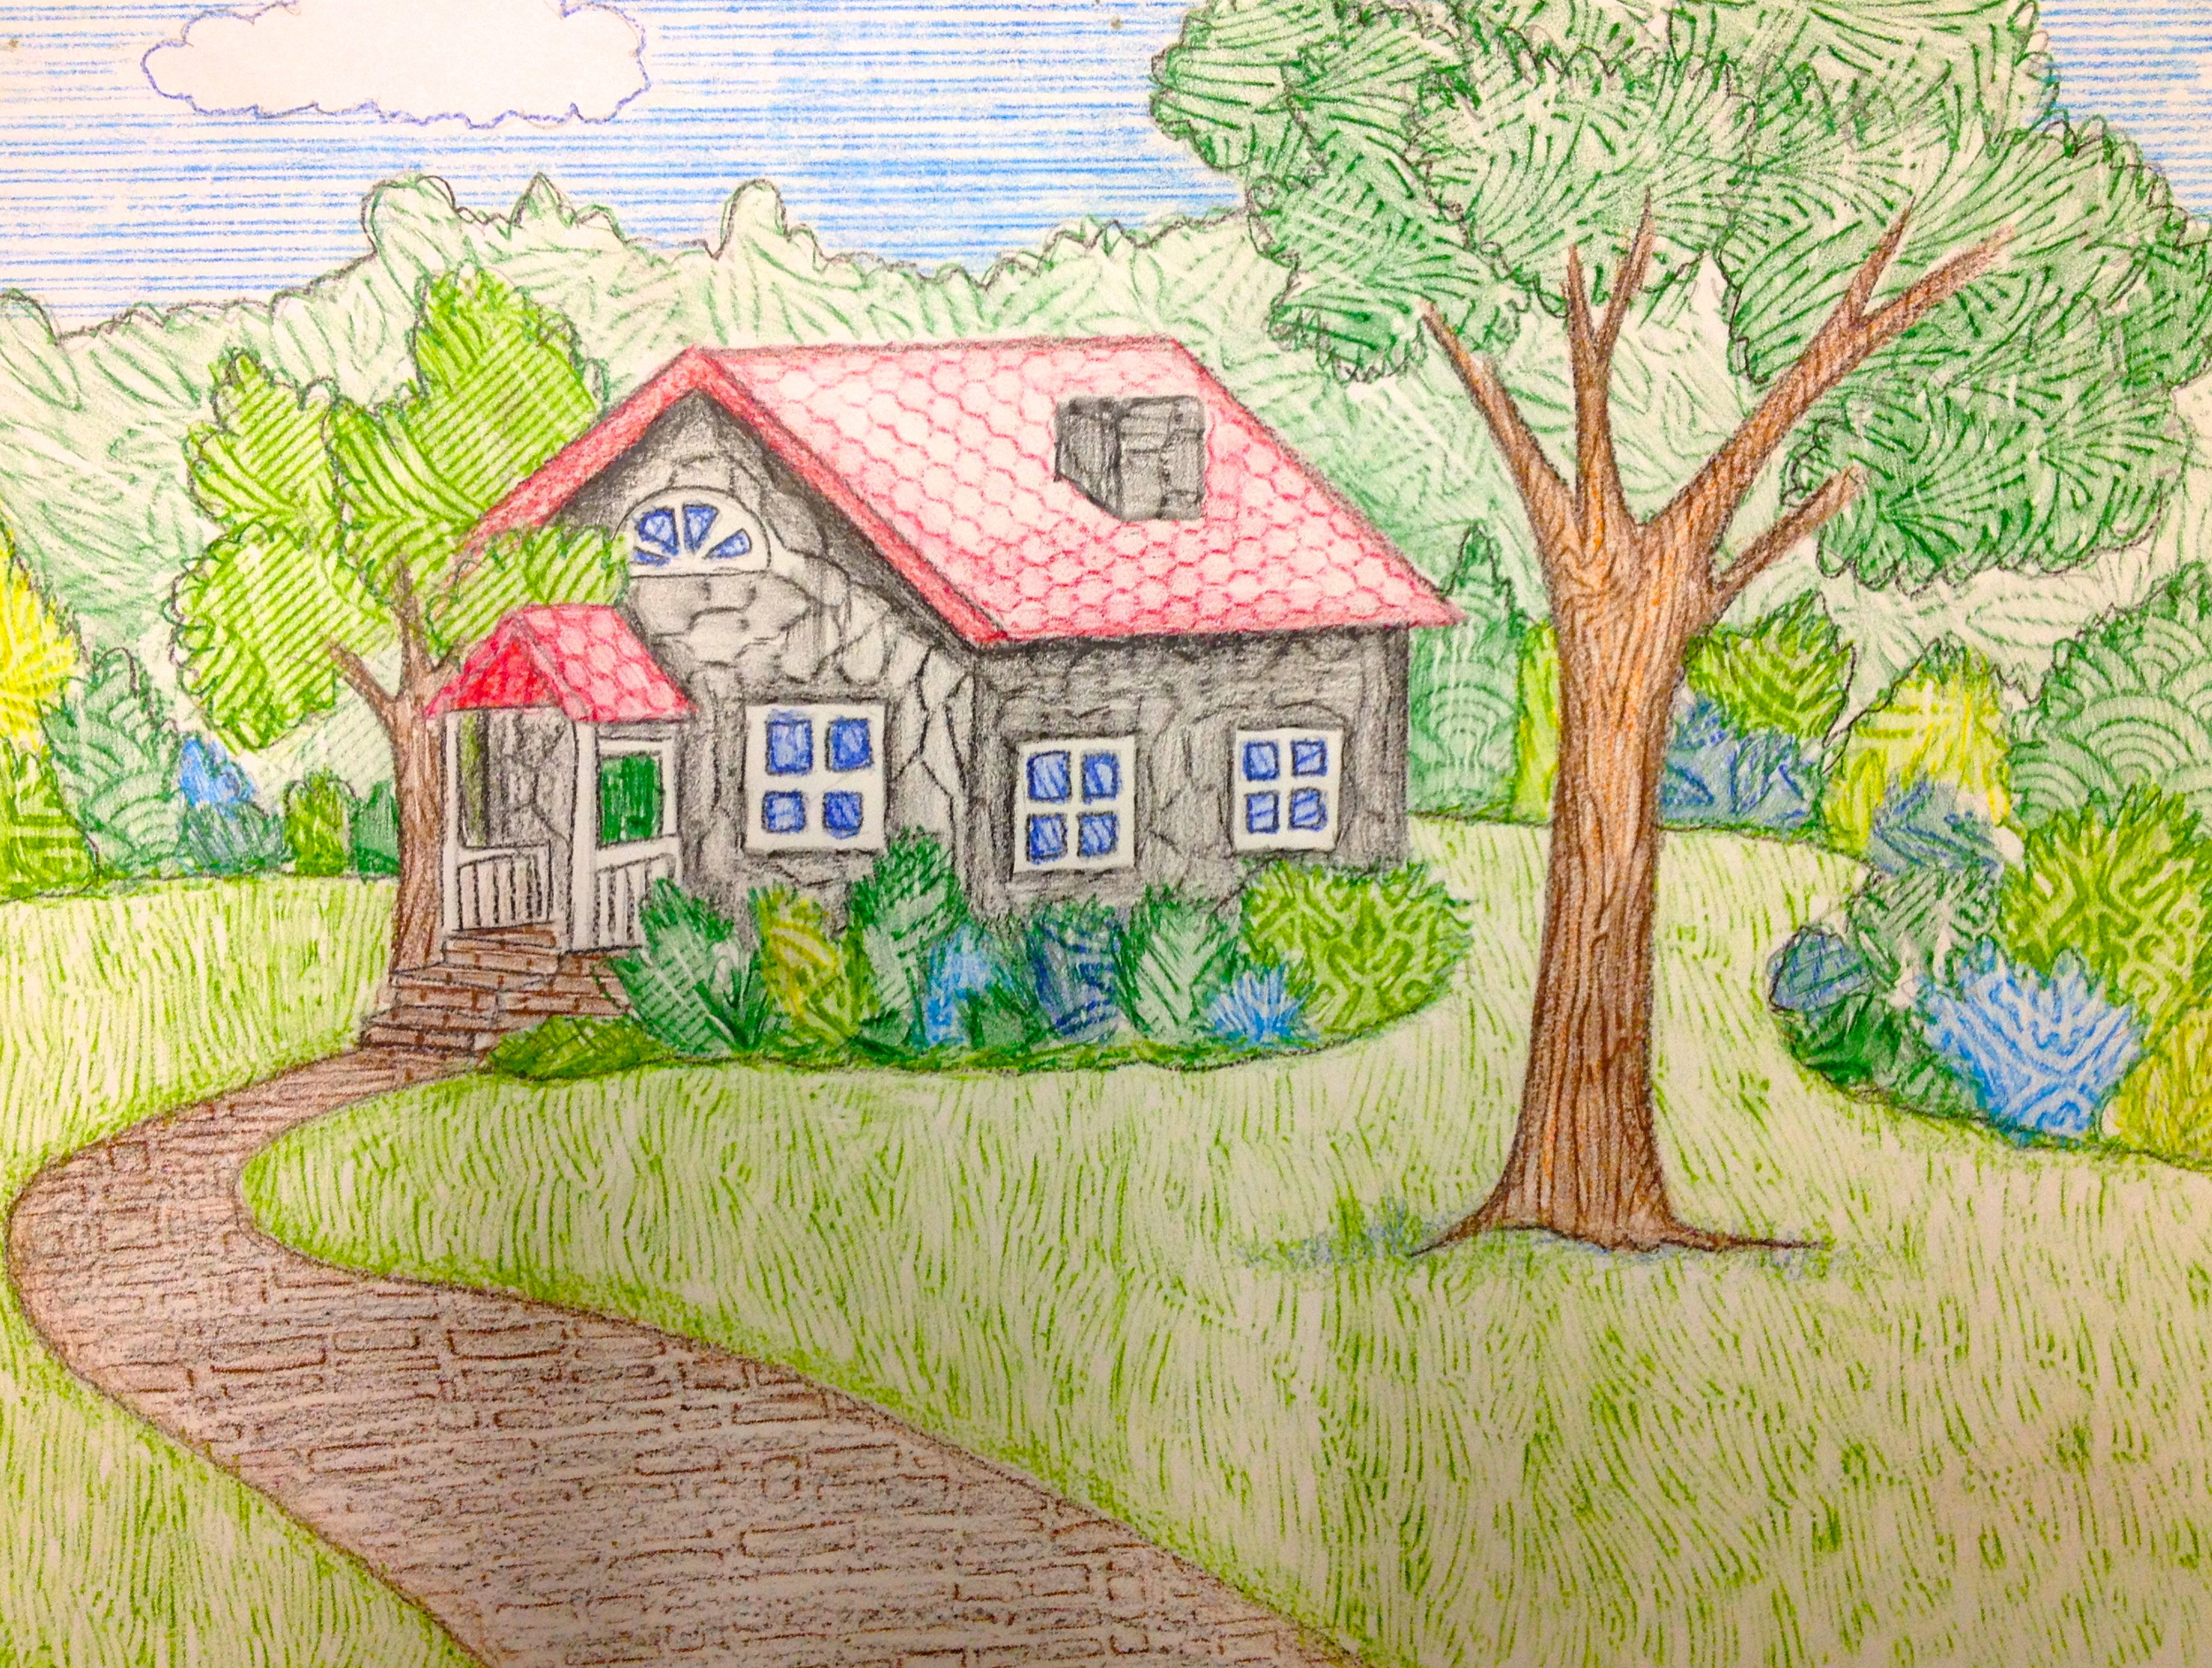 Landscape/Exterior with Rubbings